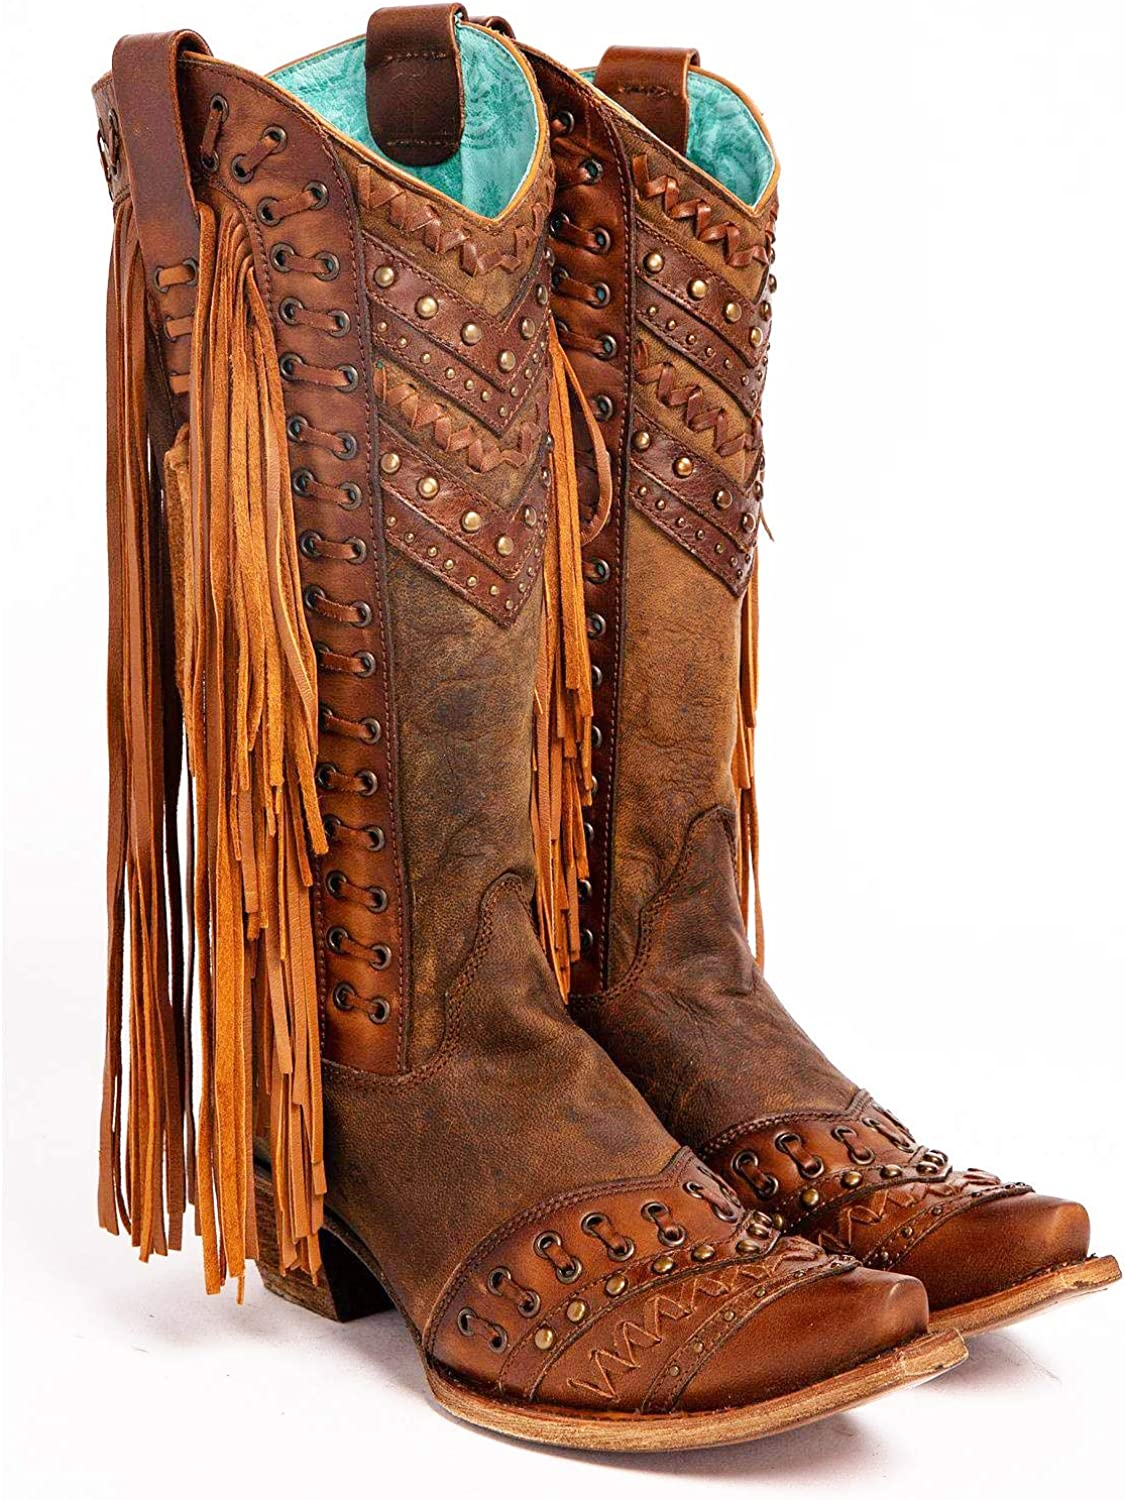 CORRAL Womens Mayela Woven /& Fringed Snip Toe Cowboy Leather Boots 7.5 Wide Brown//Tan